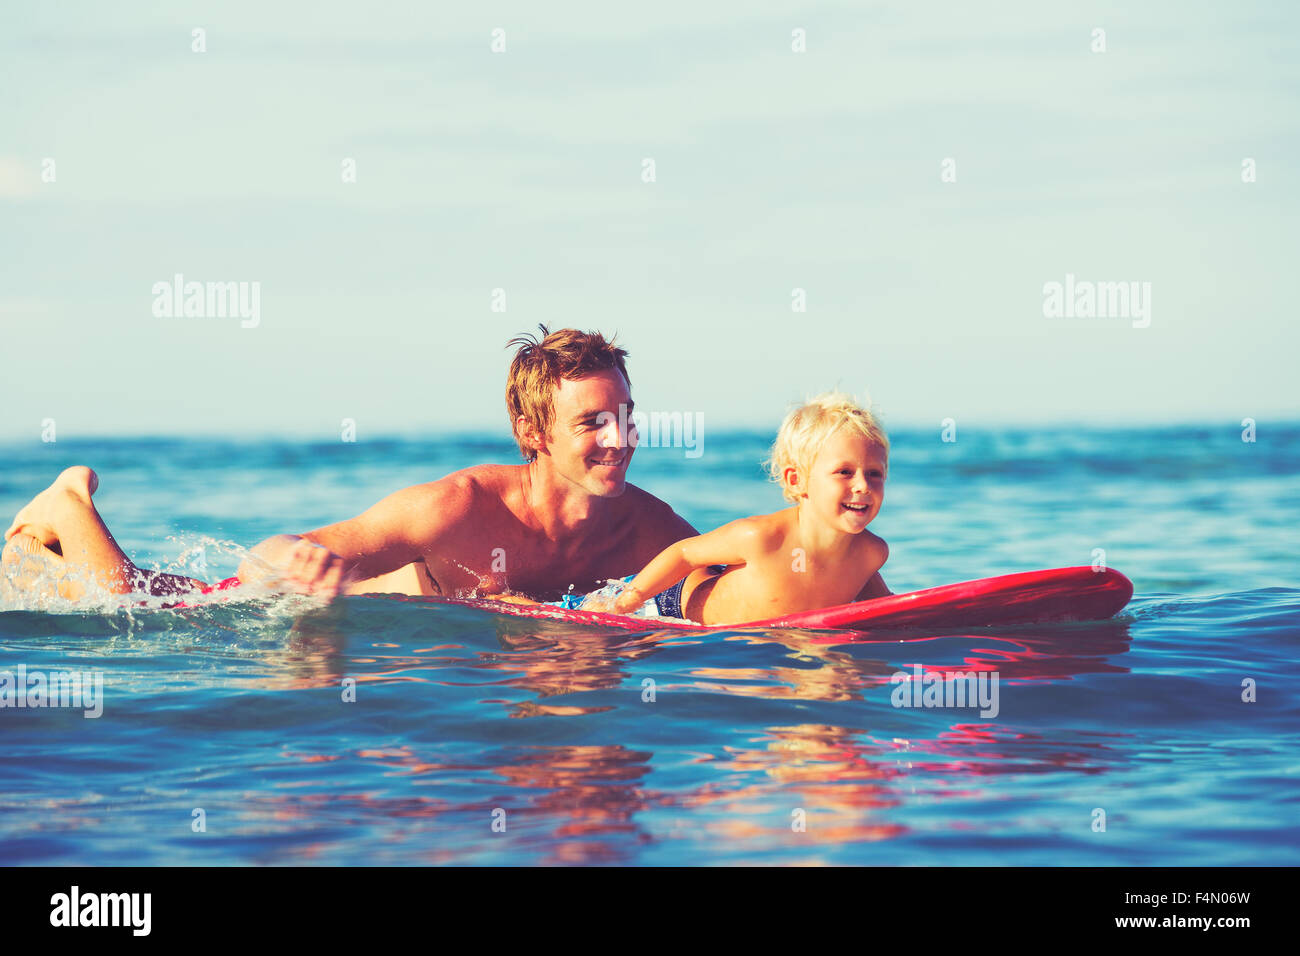 Father and son going surfing together. Summer fun outdoor lifestyle - Stock Image